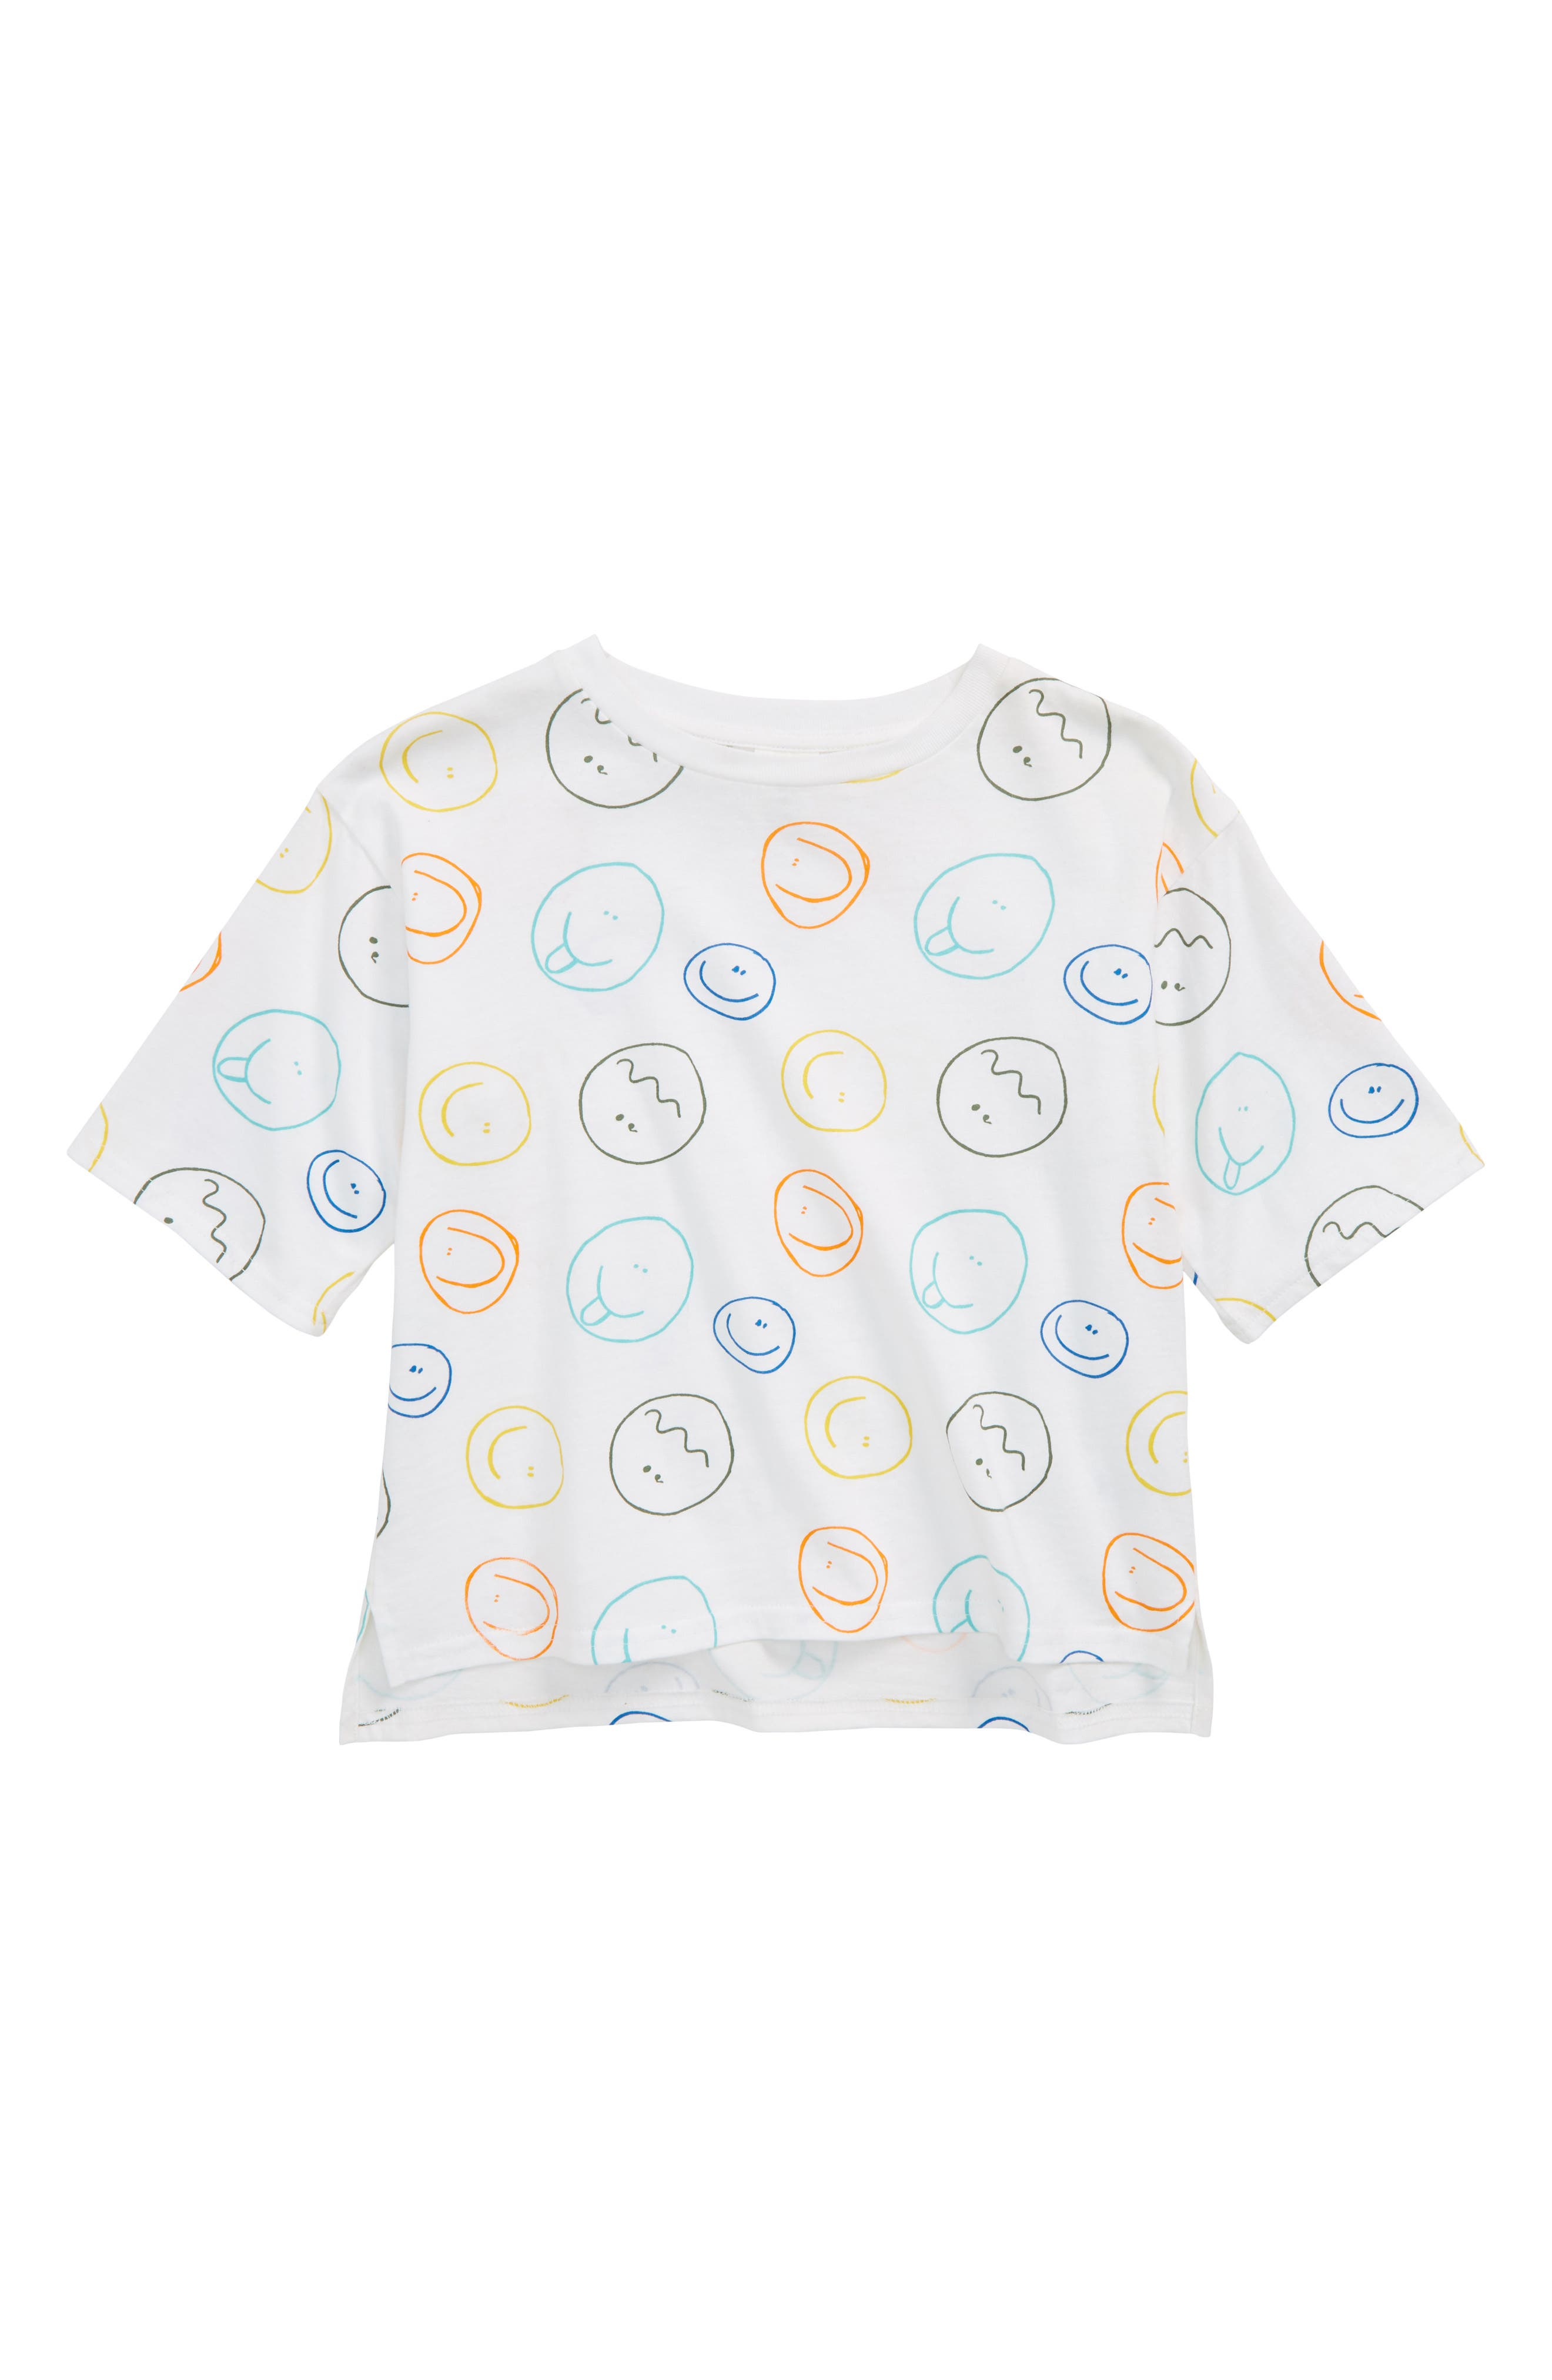 Graphic T-Shirt,                         Main,                         color, WHITE- MULTI SMILEY FACES